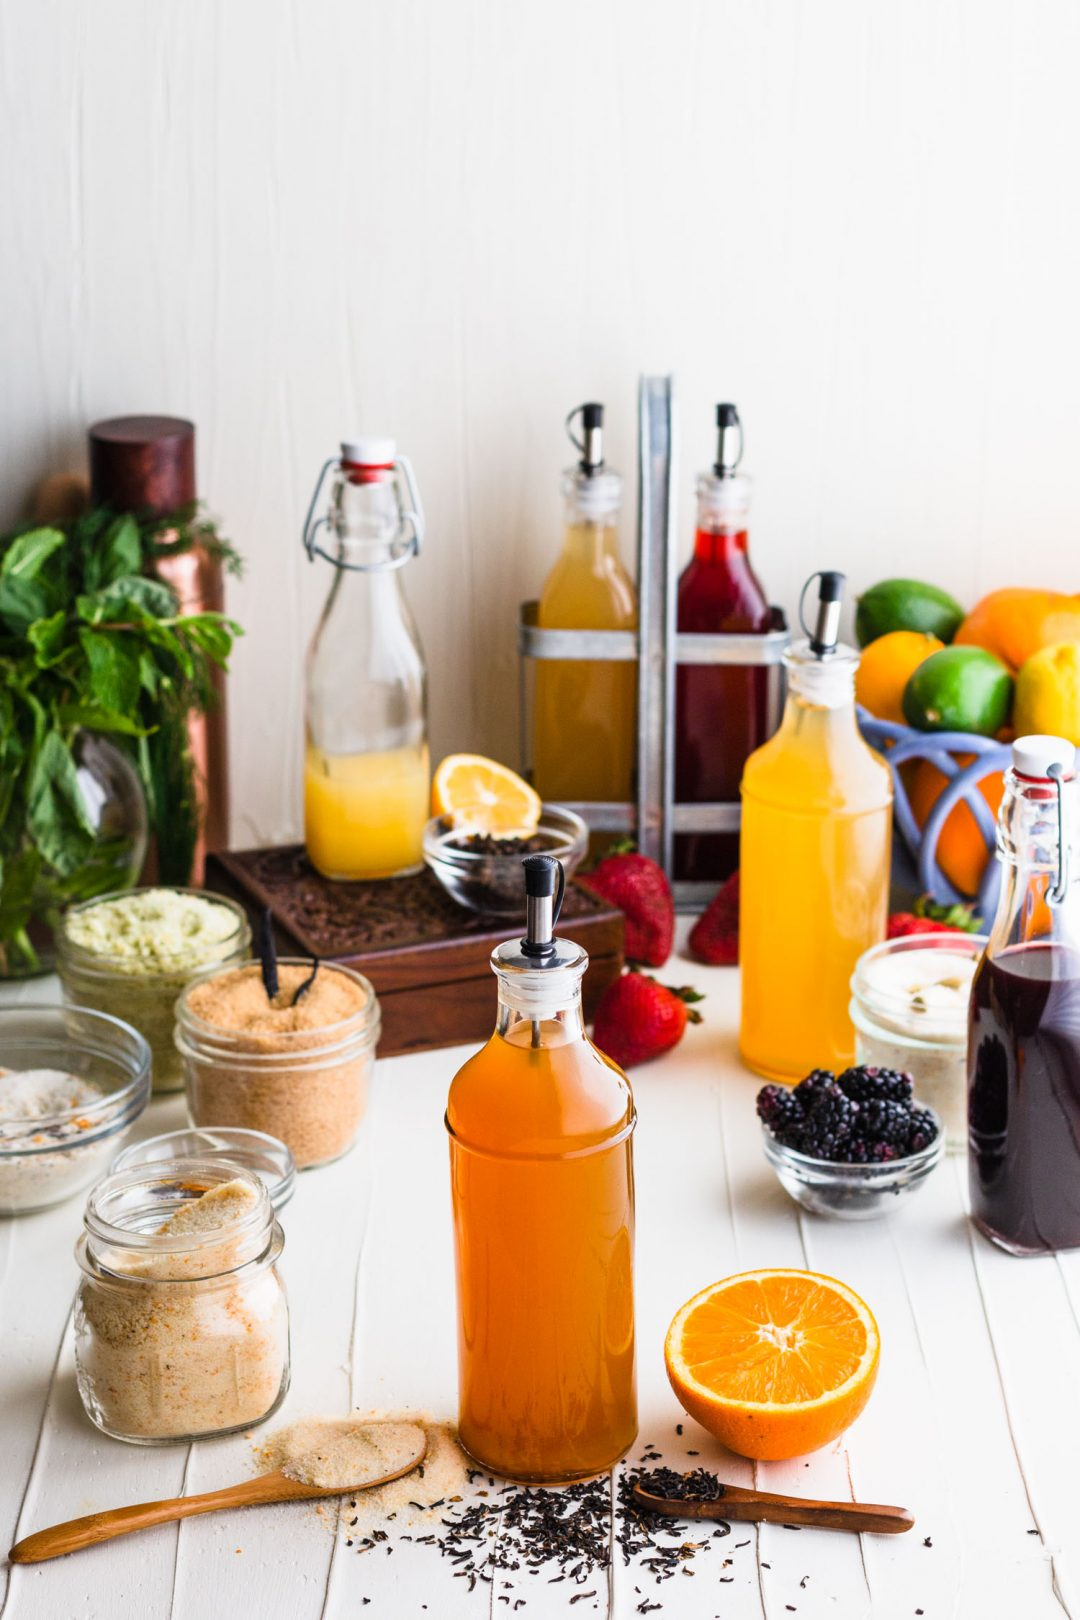 Orange shrub surrounded by wooden spoons with sugar and tea, an orange half, and other shrubs and infused sugars.